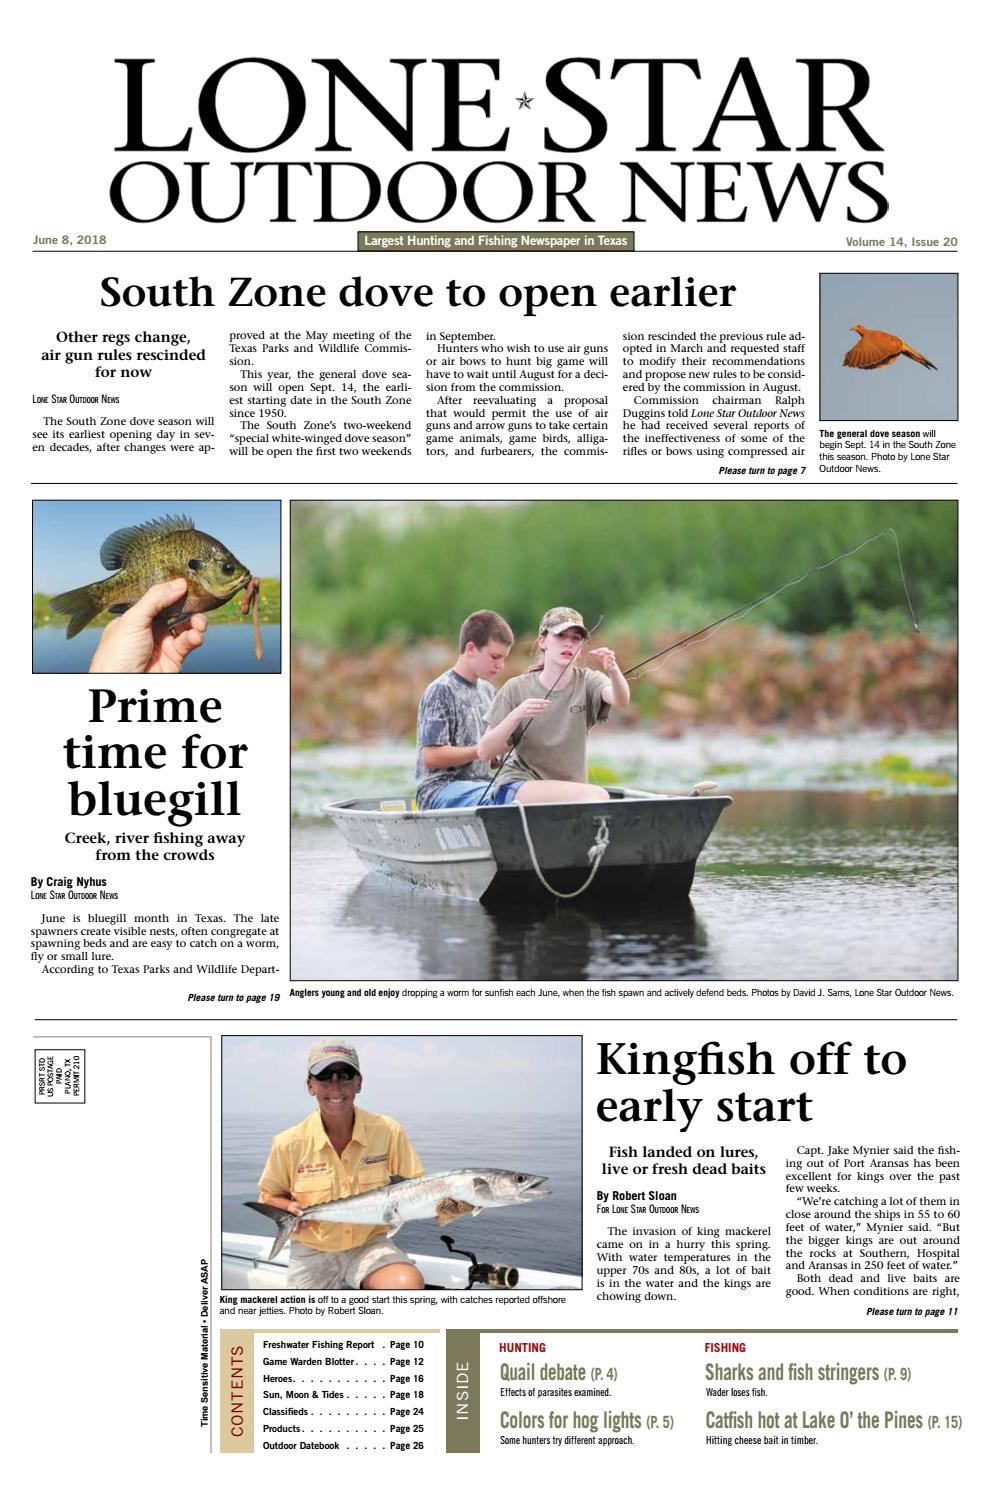 June 8, 2018 - Lone Star Outdoor News - Fishing & Hunting by